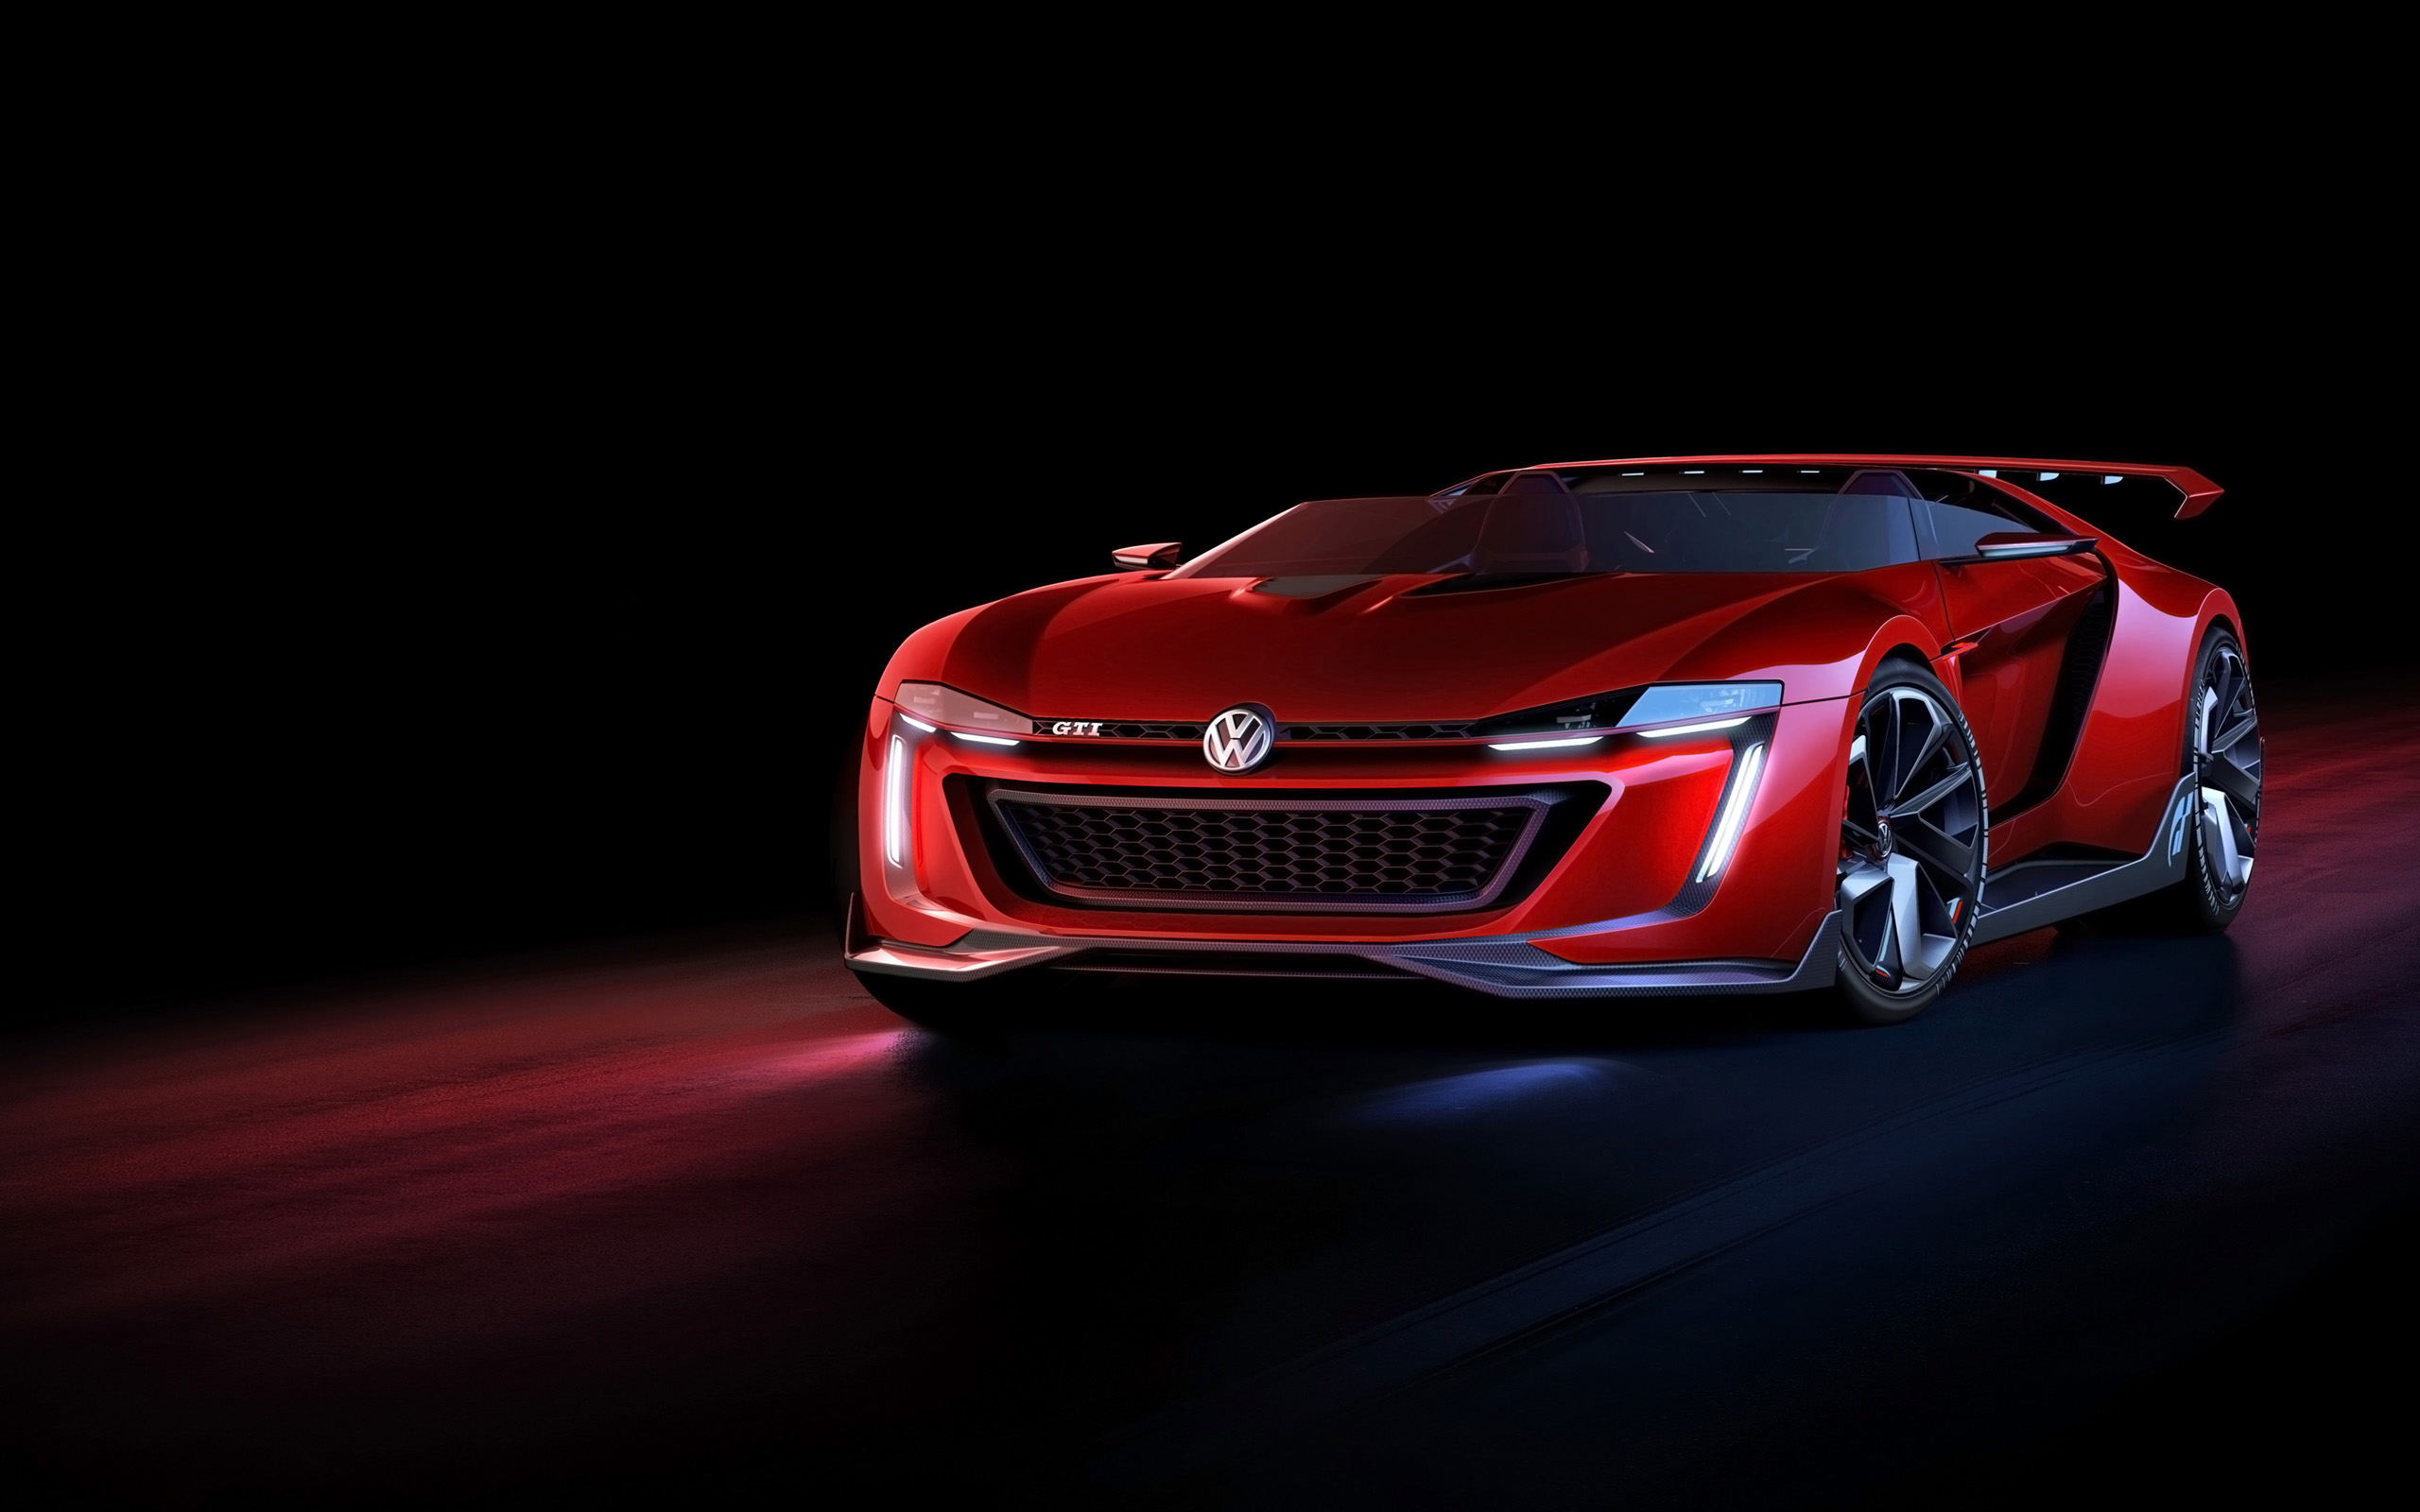 2014 volkswagen gti roadster wallpaper | hd car wallpapers | id #4598